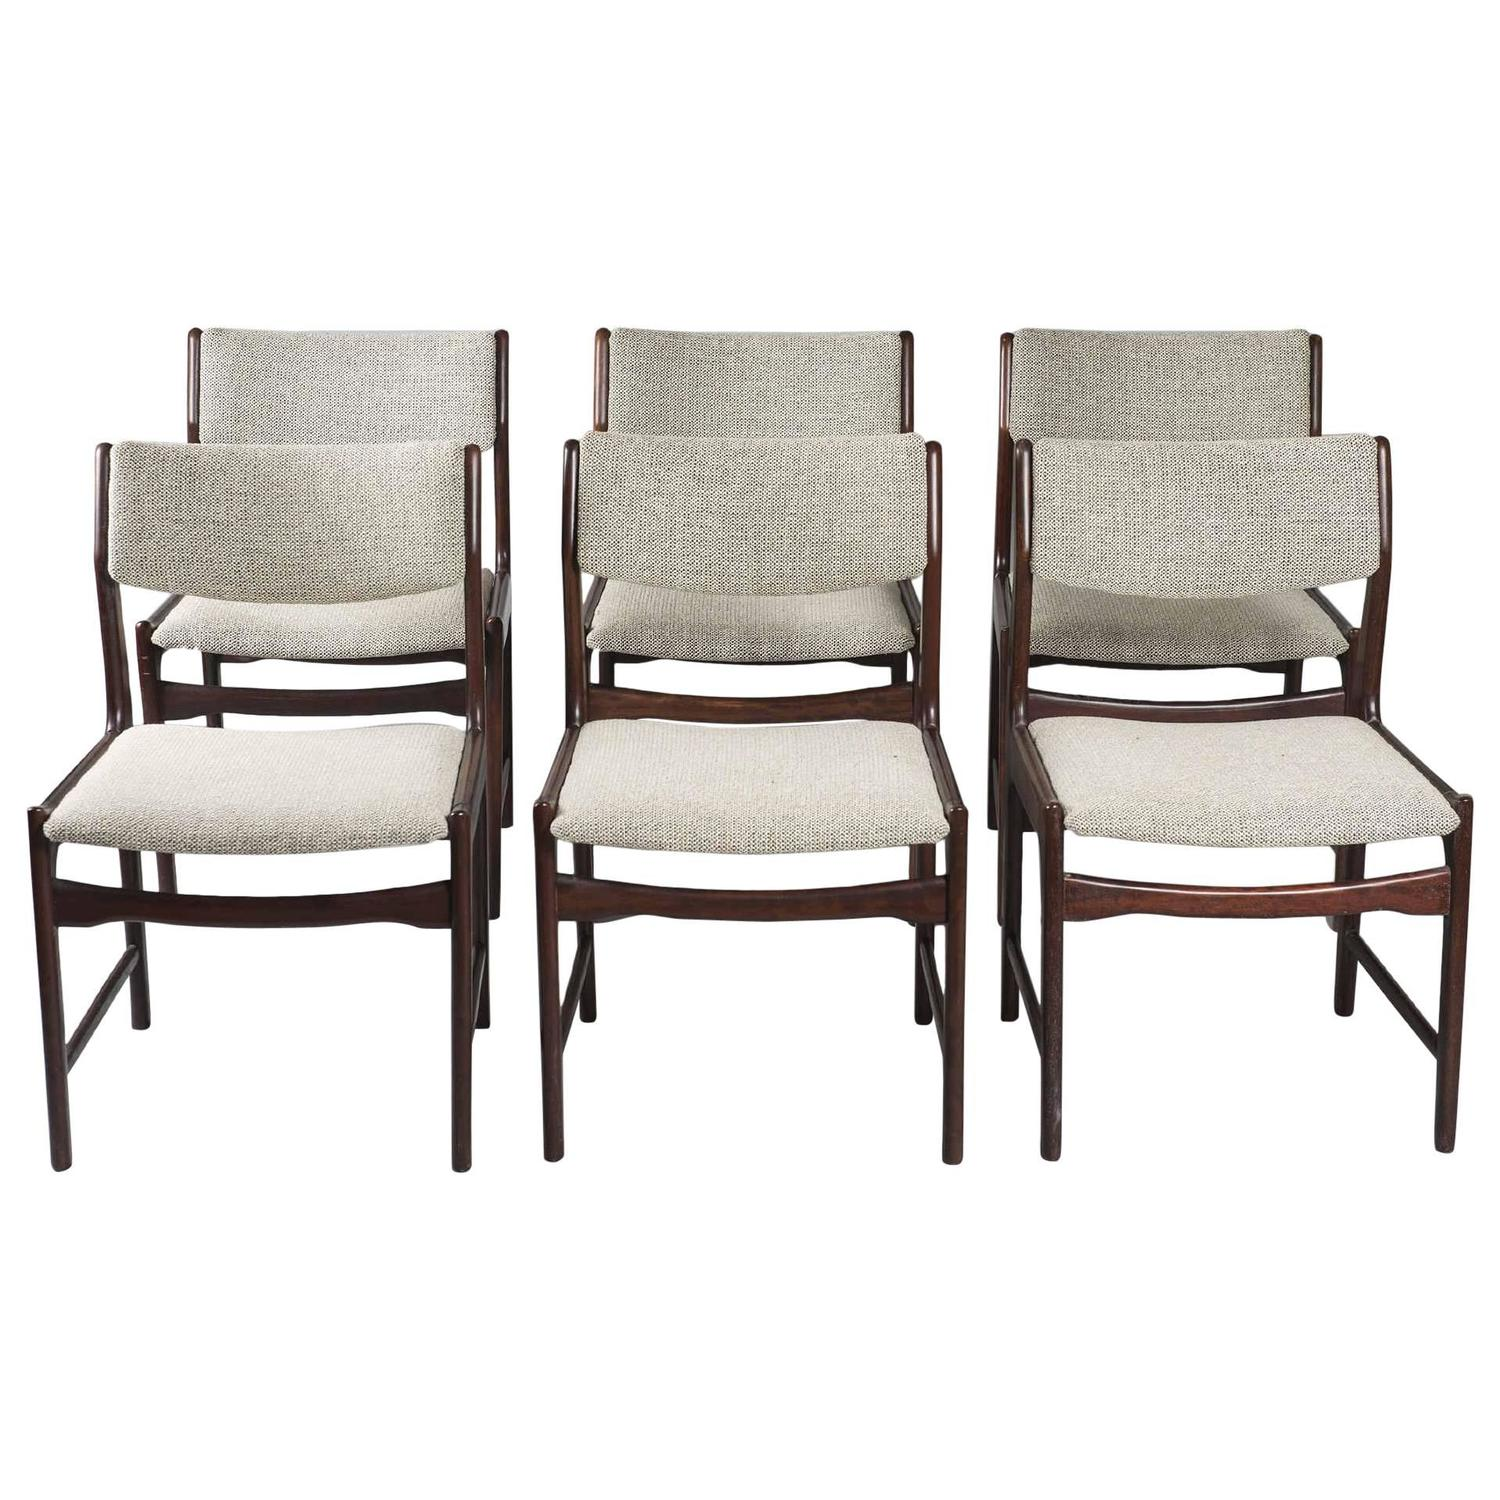 Six Dining Rosewood Chairs For Tecno At 1stdibs